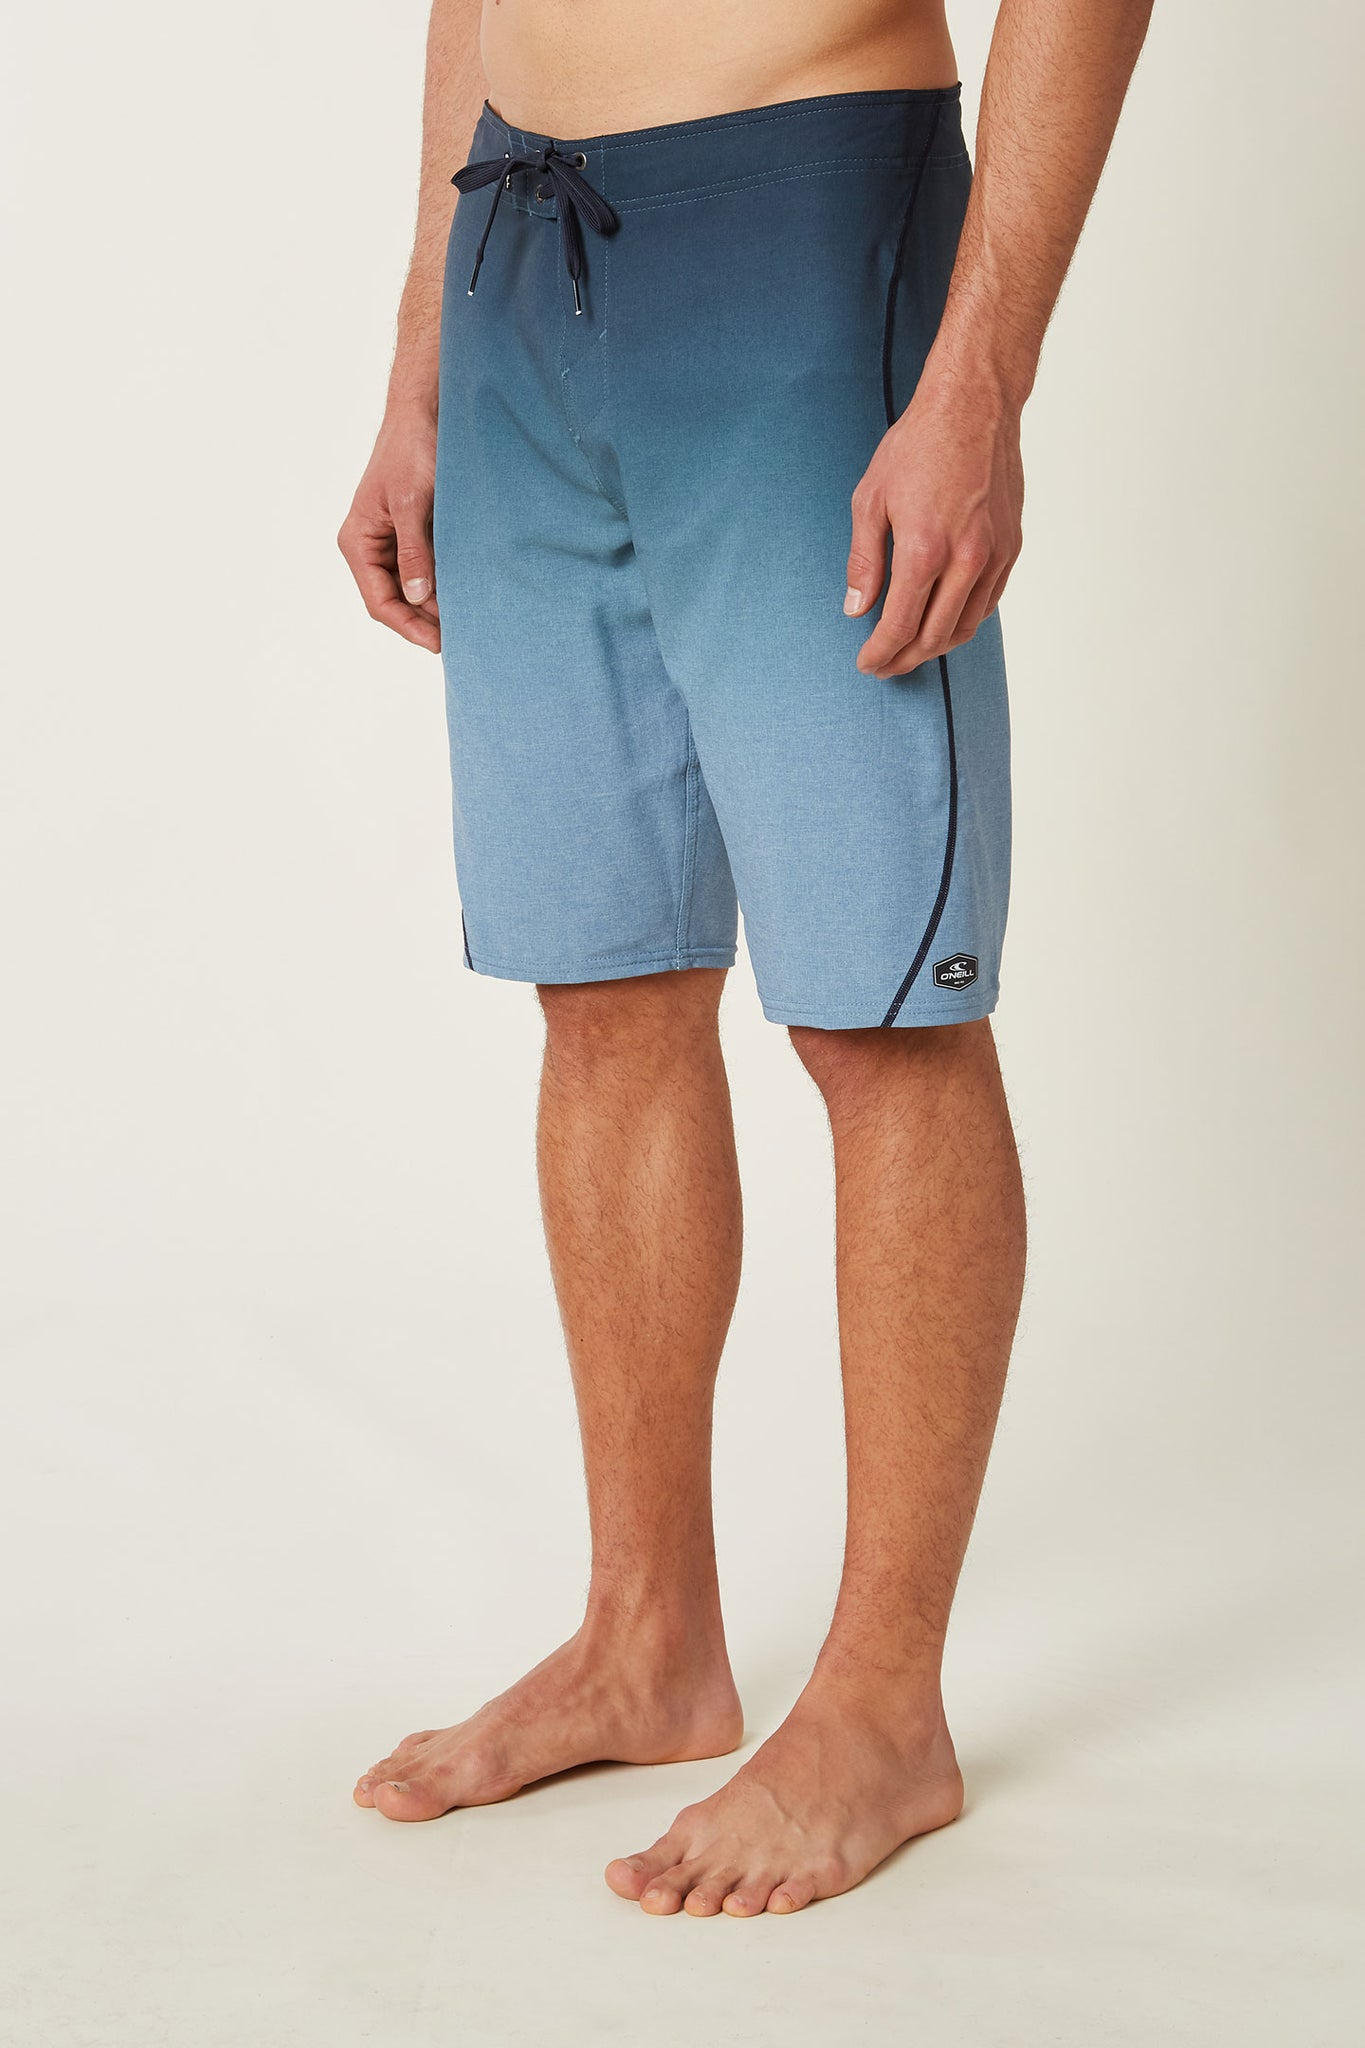 Hyperfreak S Seam Boardshorts | O'Neill Clothing USA